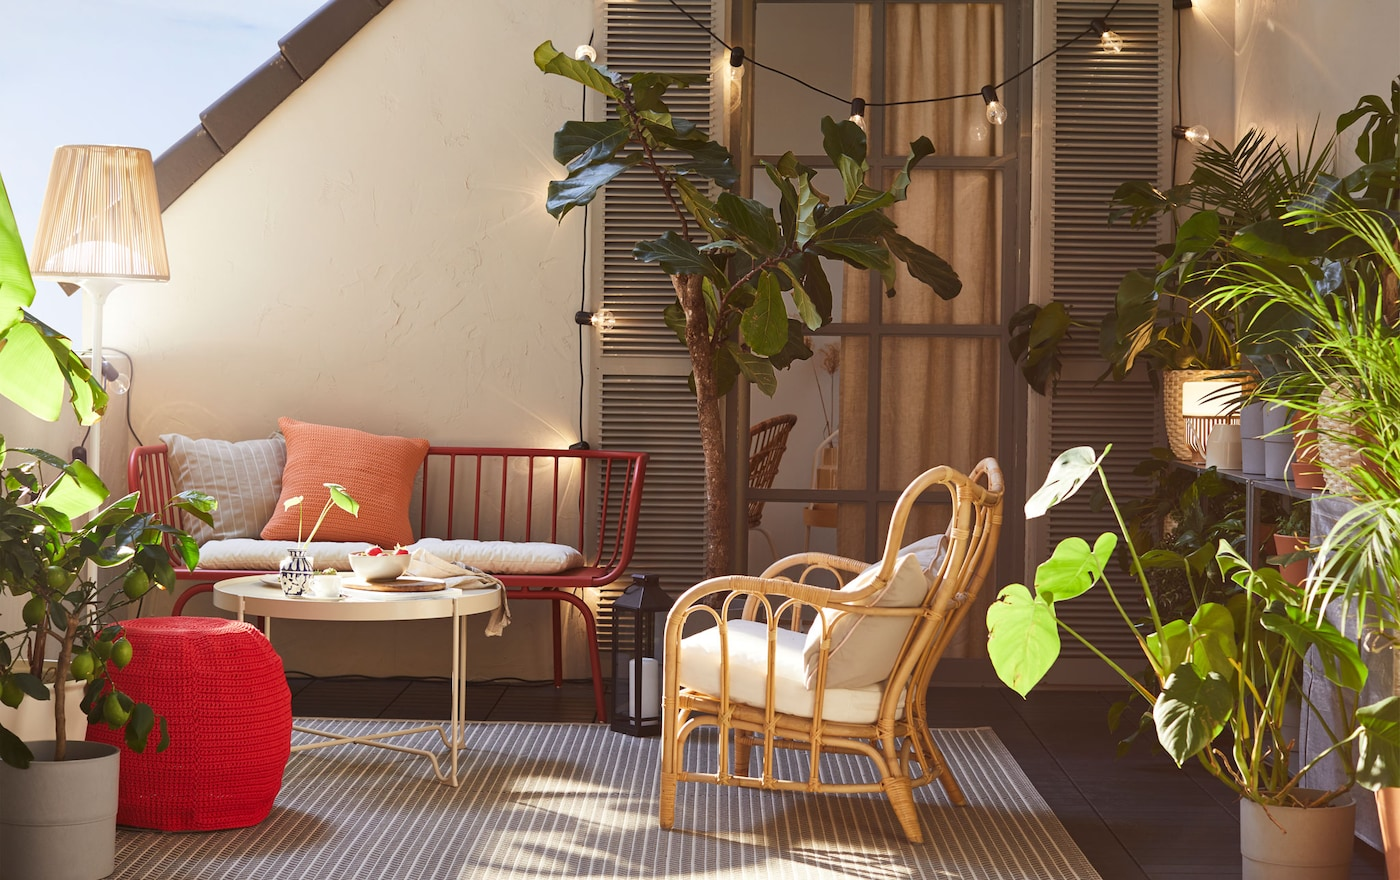 IKEA BRUSEN red 3-seat outdoor sofa is durable and easy to care for since it's made of powder-coated steel. Combine with chair cushions and decorative cushions for extra comfort.